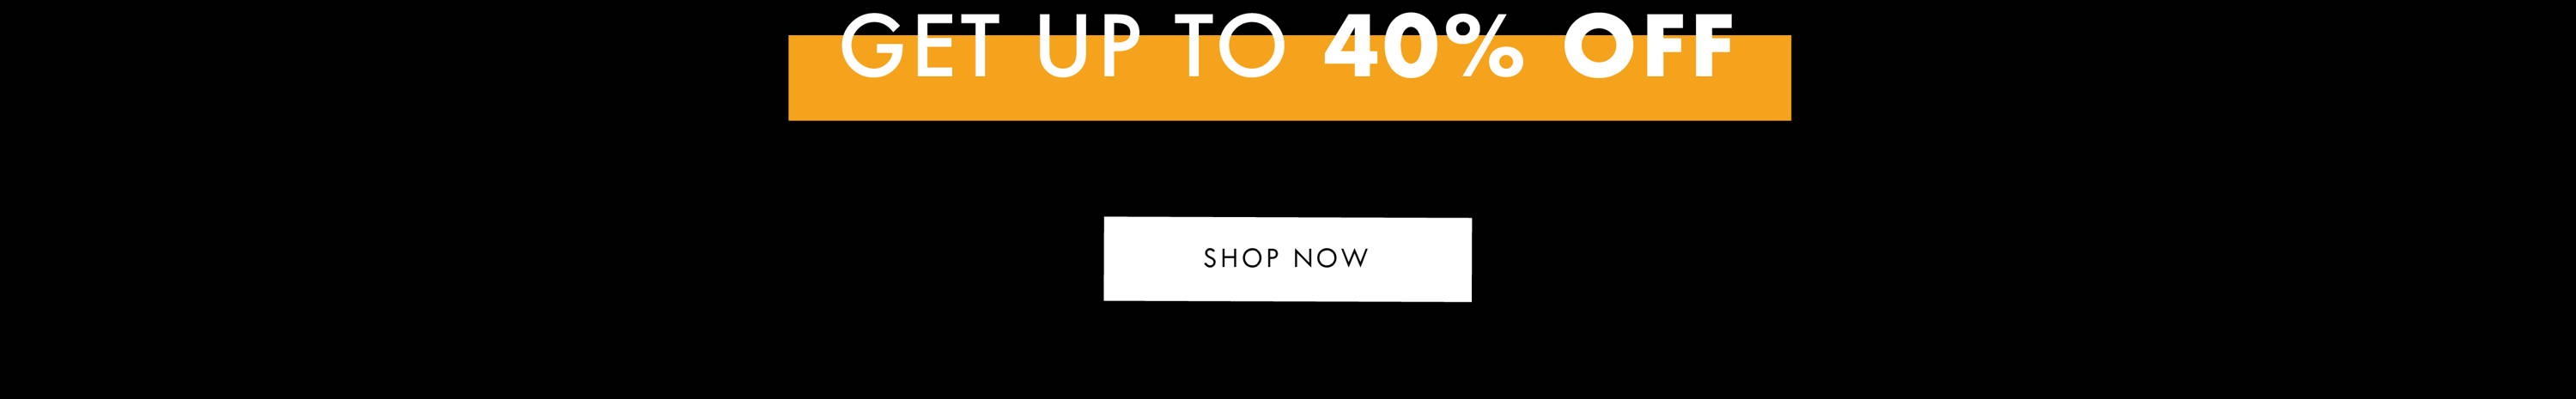 Get up to 40% Off - Shop Now